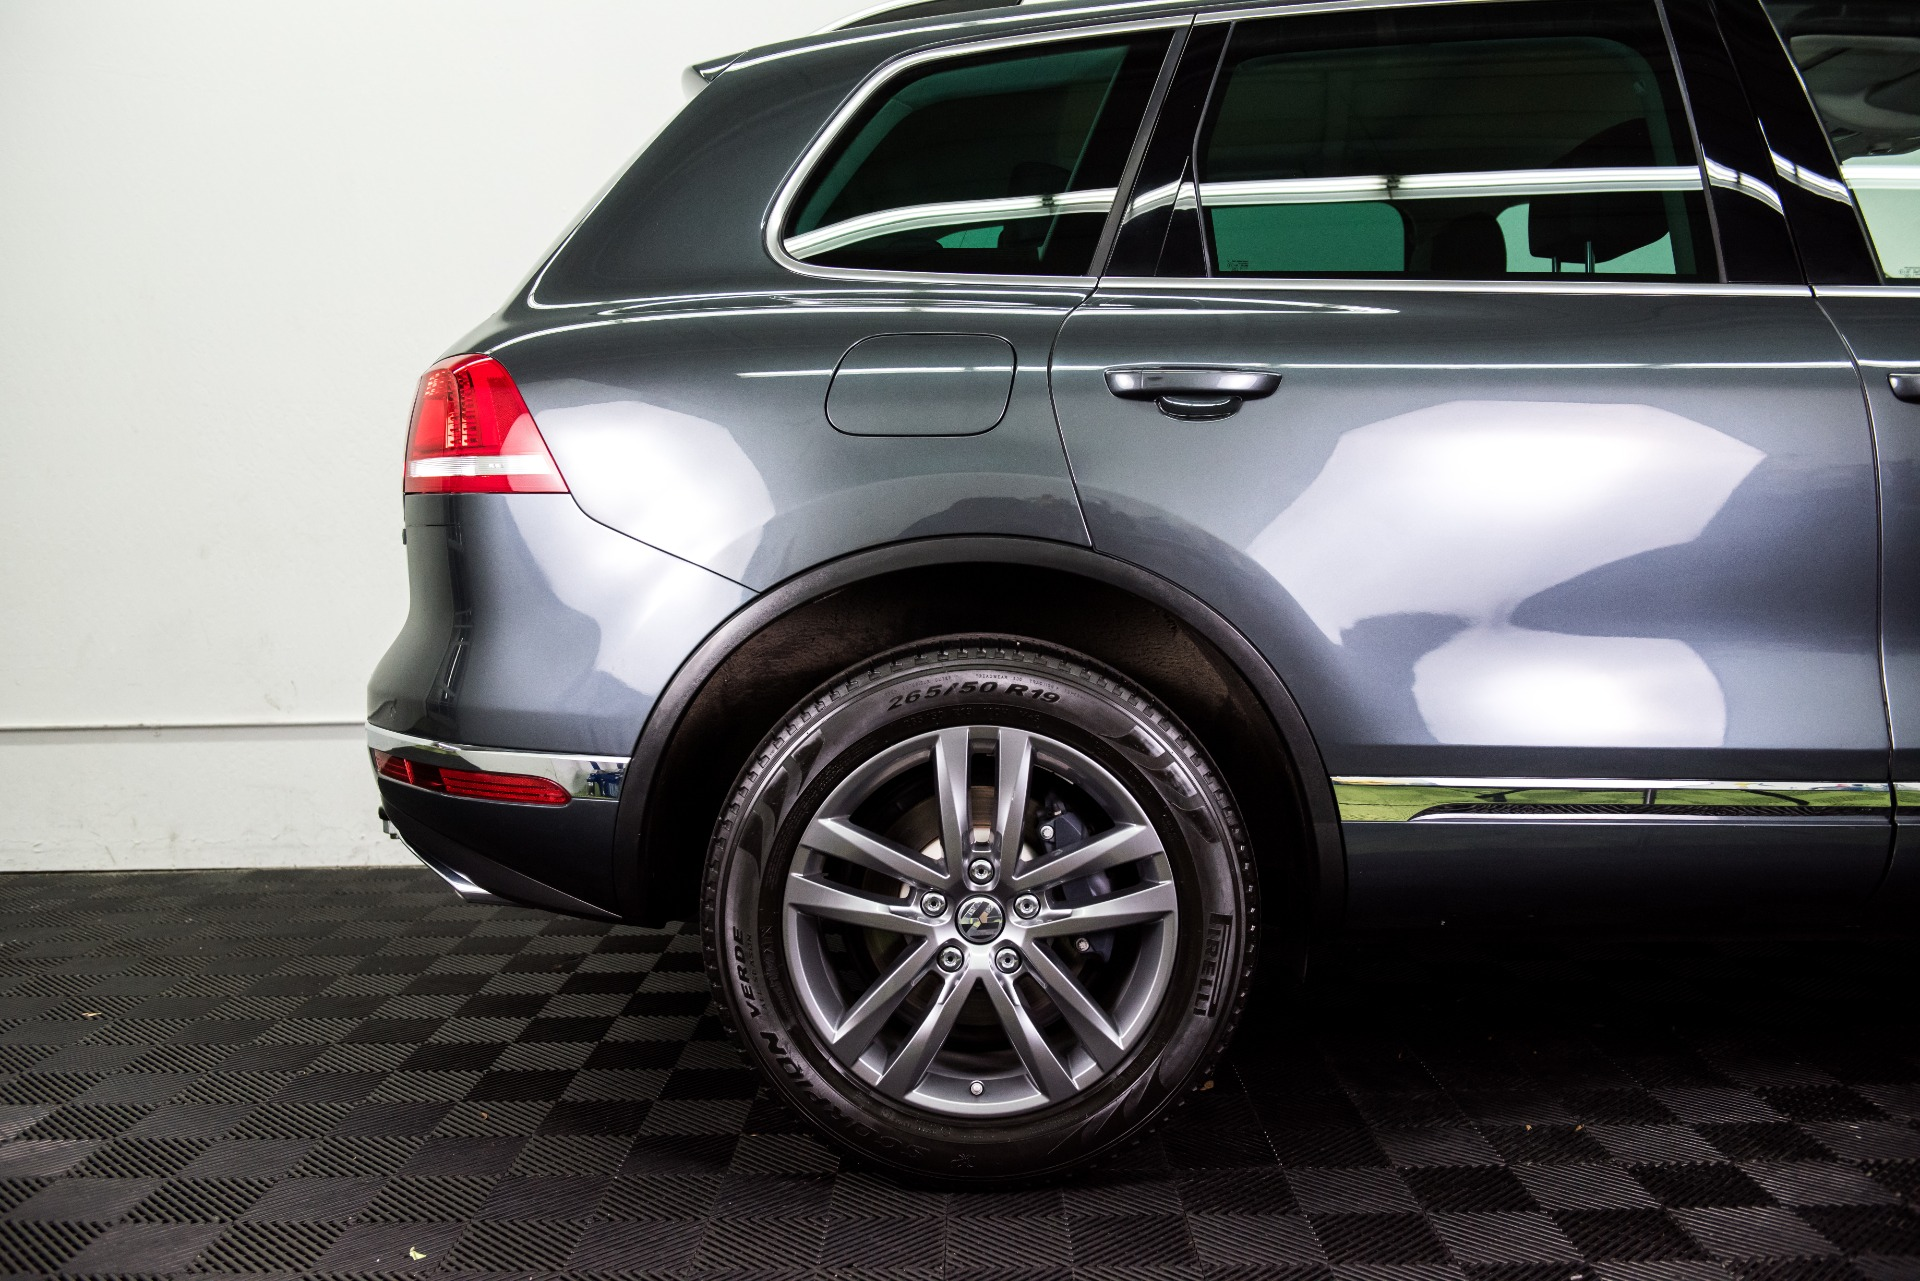 Used 2015 Volkswagen Touareg TDI Lux Used 2015 Volkswagen Touareg TDI Lux for sale Sold at Response Motors in Mountain View CA 6